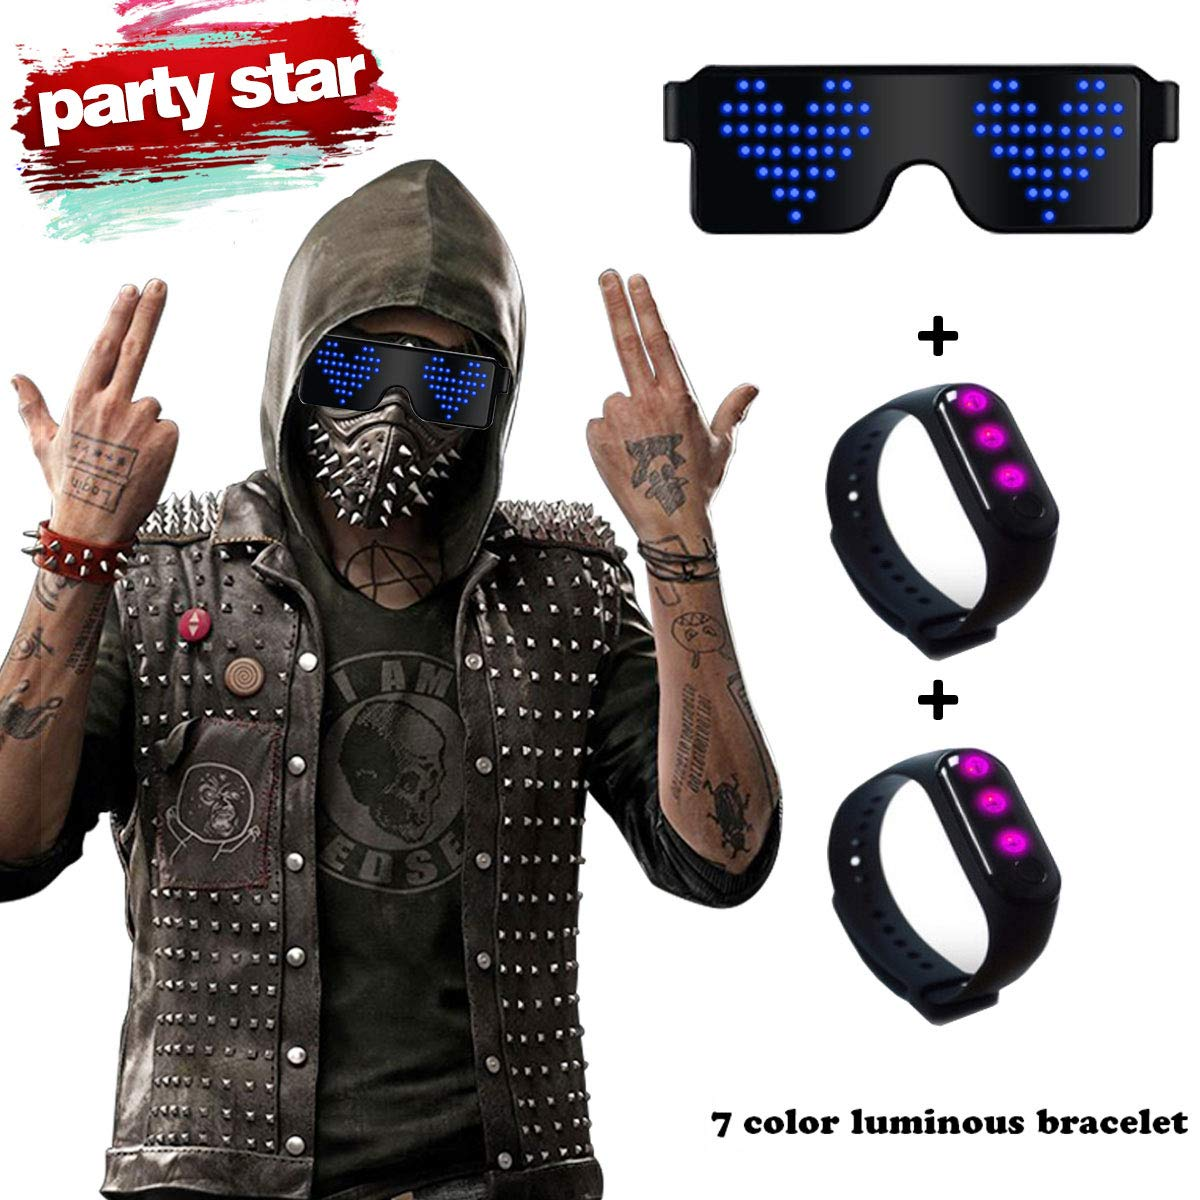 RICISUNG Trustworthy 2019 LED Sunglass,Flashing Cool Party Light up Glasses can work in 8 Animation Modes for 10 Hours,For Nightclubs, DJ, Halloween, Birthday Parties, New Year's party Supplies (Blue)